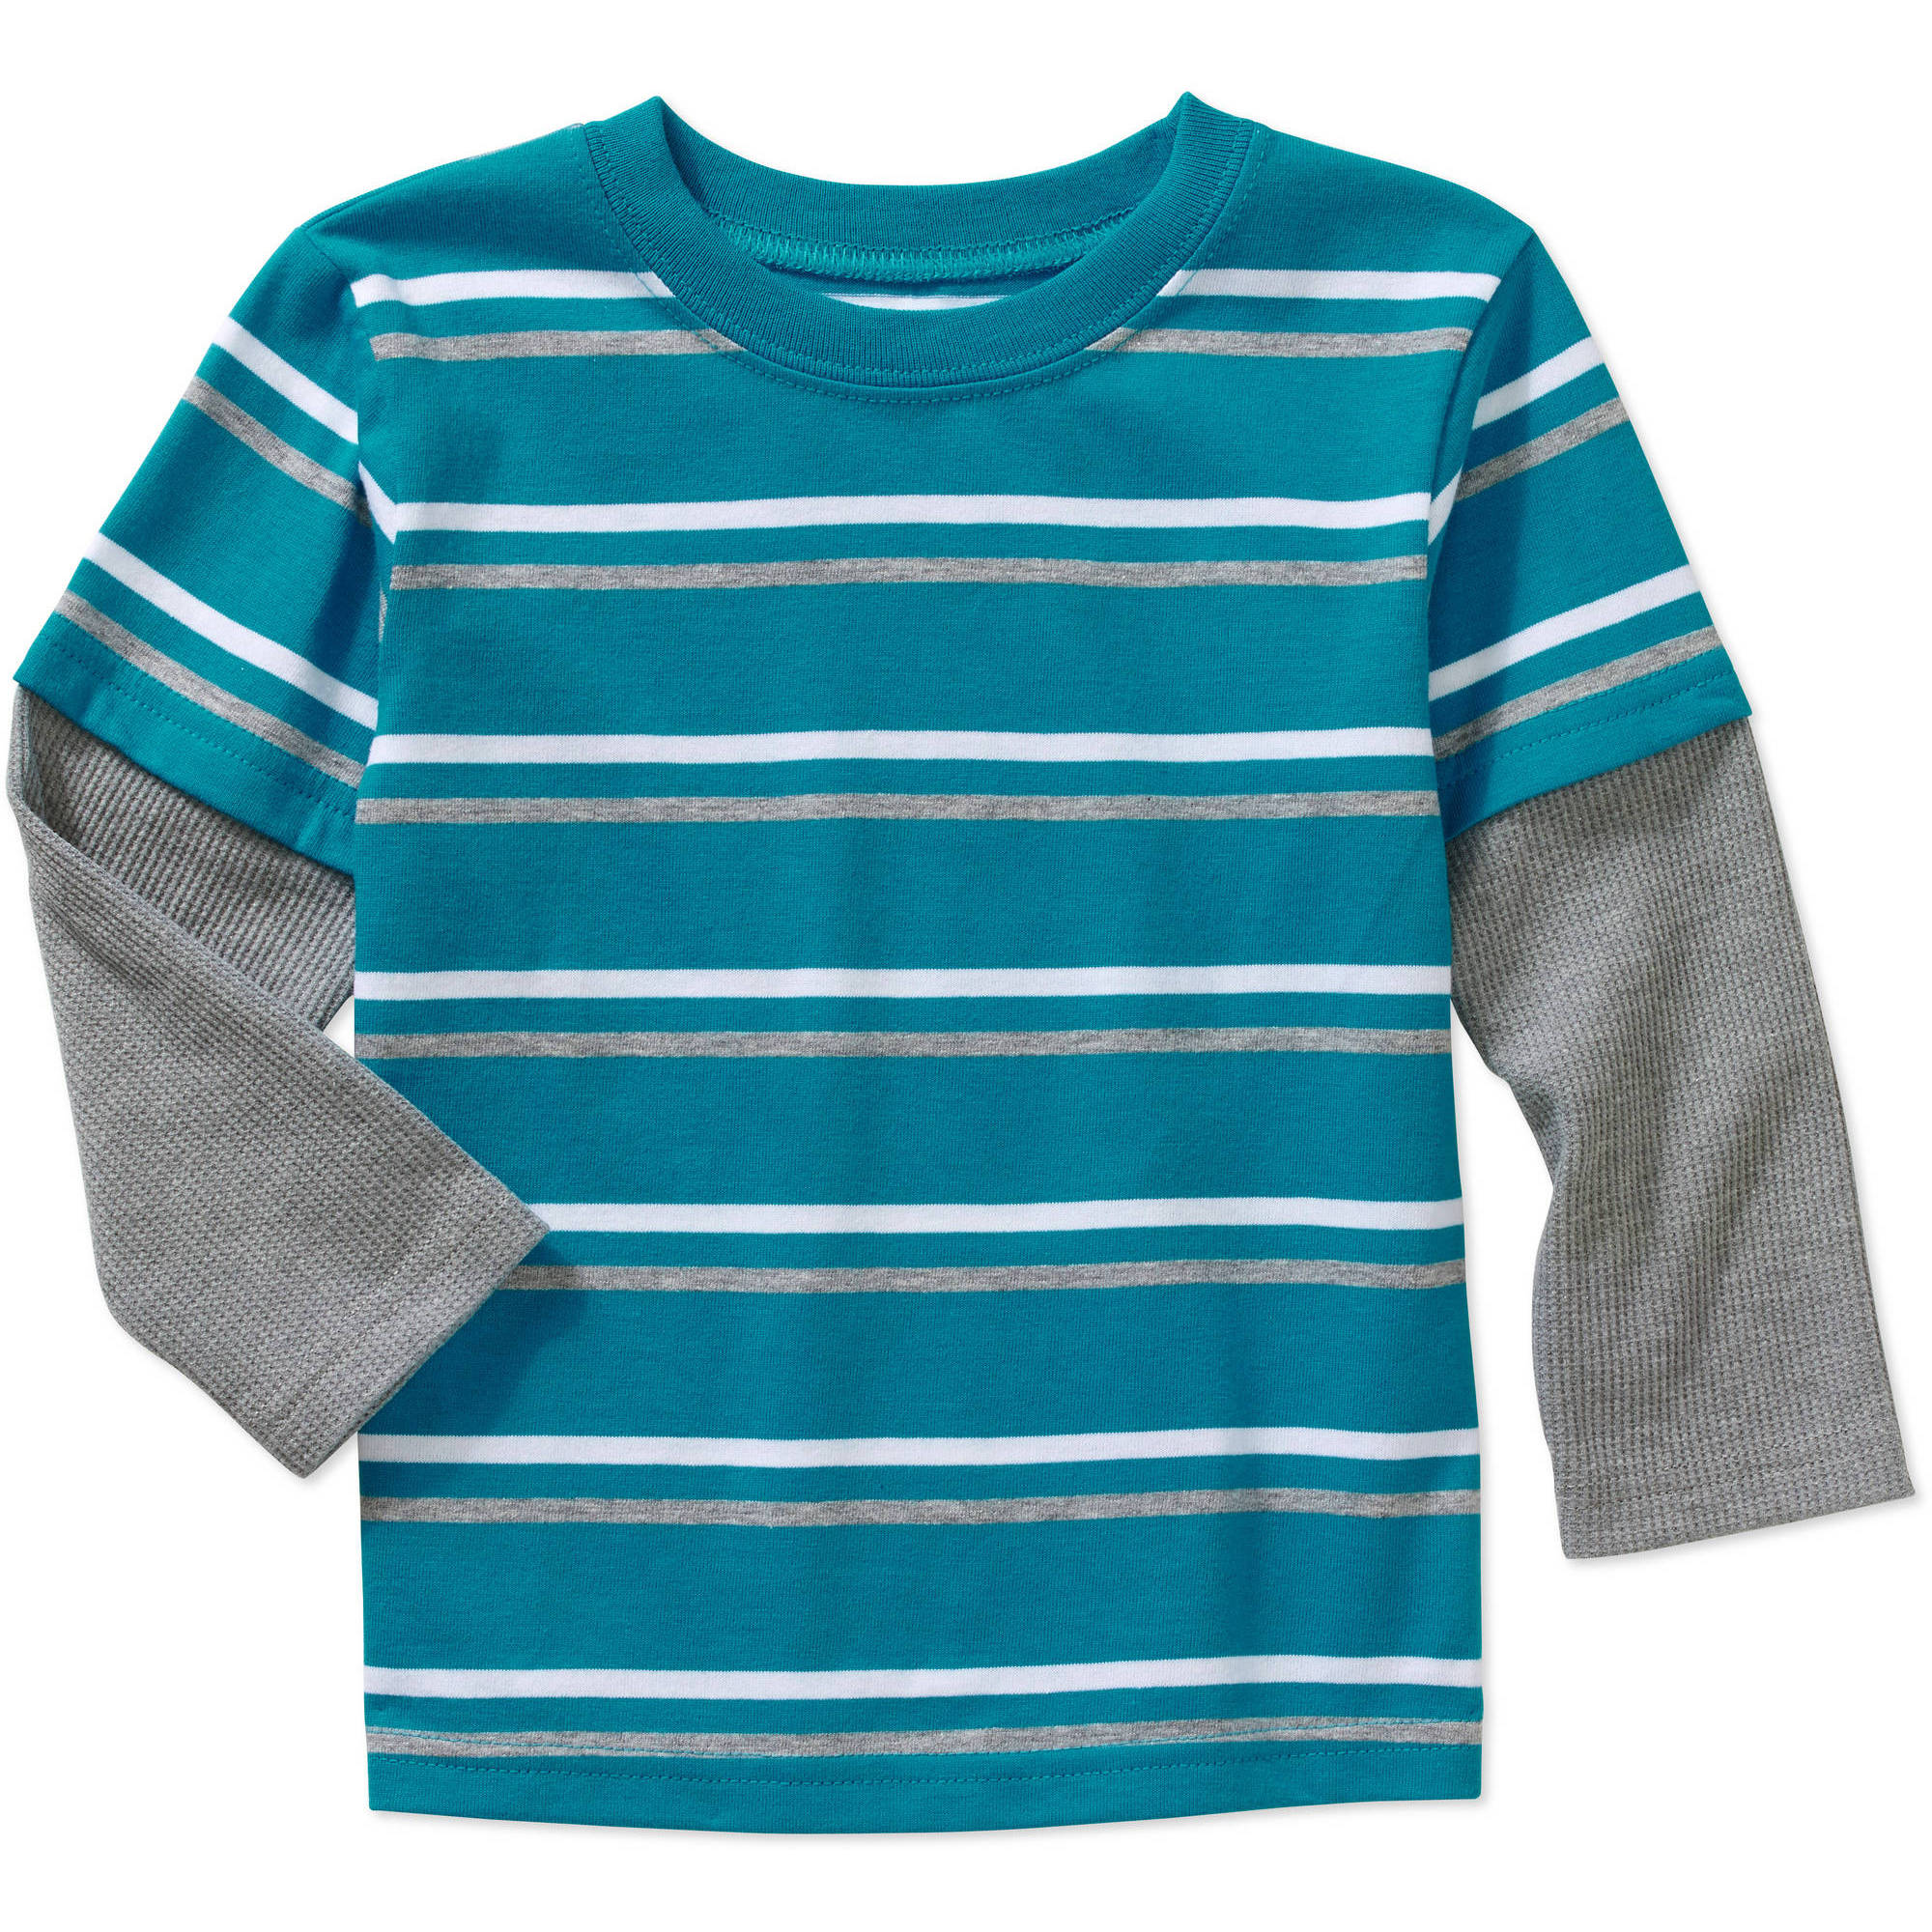 Garanimals Baby Toddler Boys' Yarn-Dye Stripe Hangdown Tee Shirt